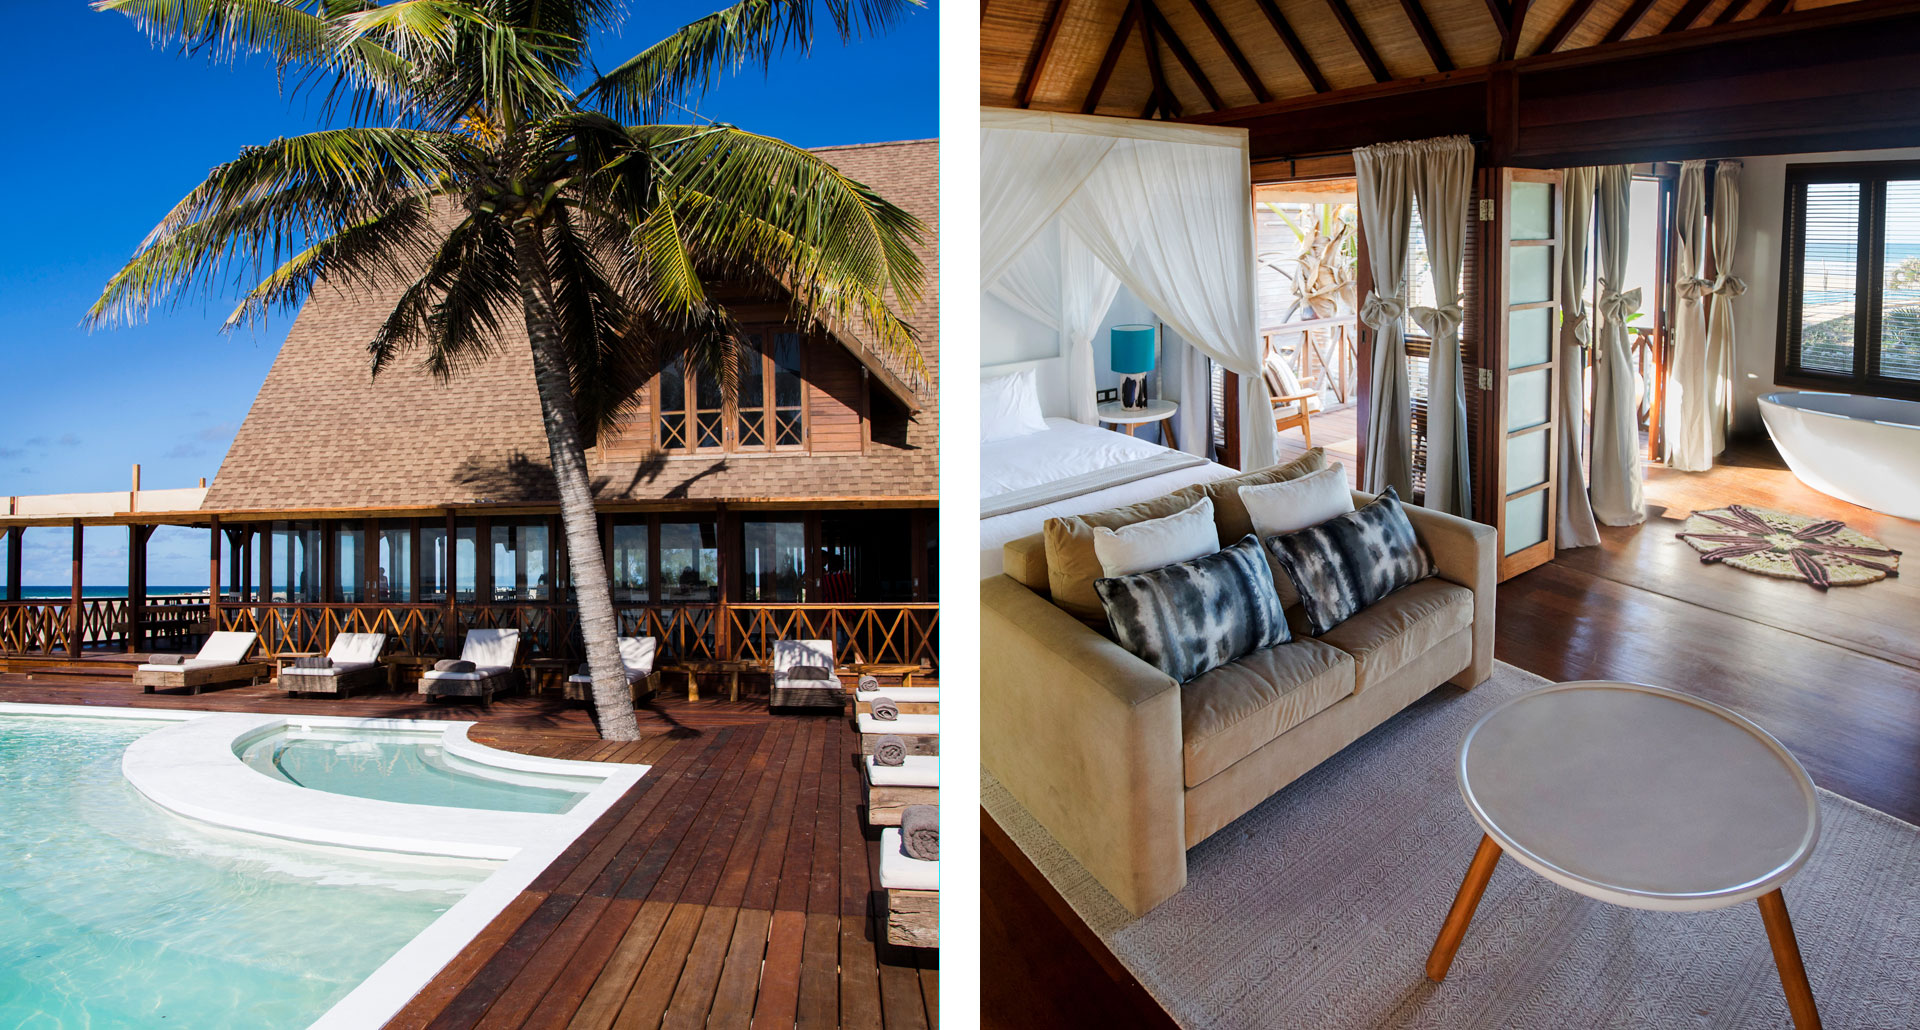 Sentidos Beach Retreat - boutique hotel in Inhambane